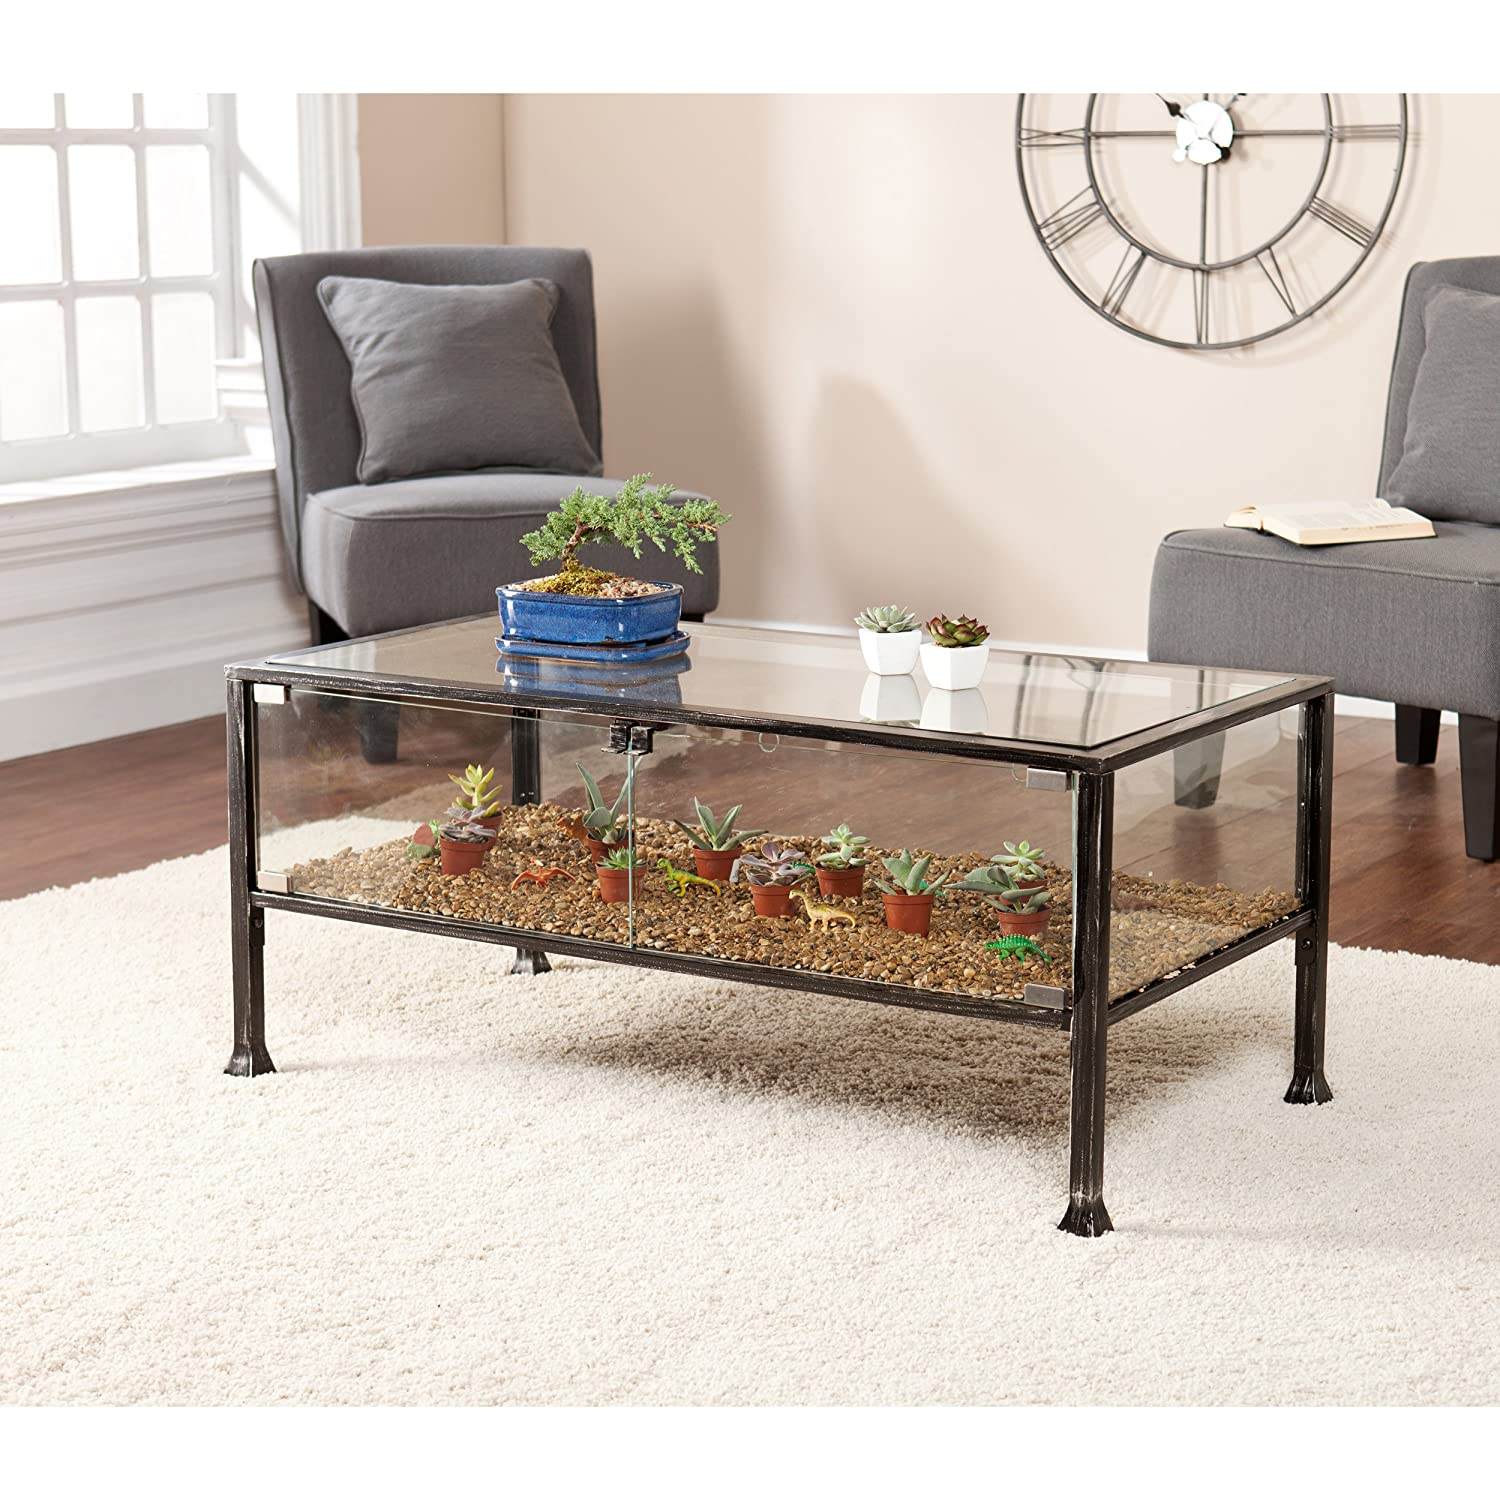 Southern Enterprises Terrarium Display Cocktail Coffee Table, Black with Silver Distressed Finish